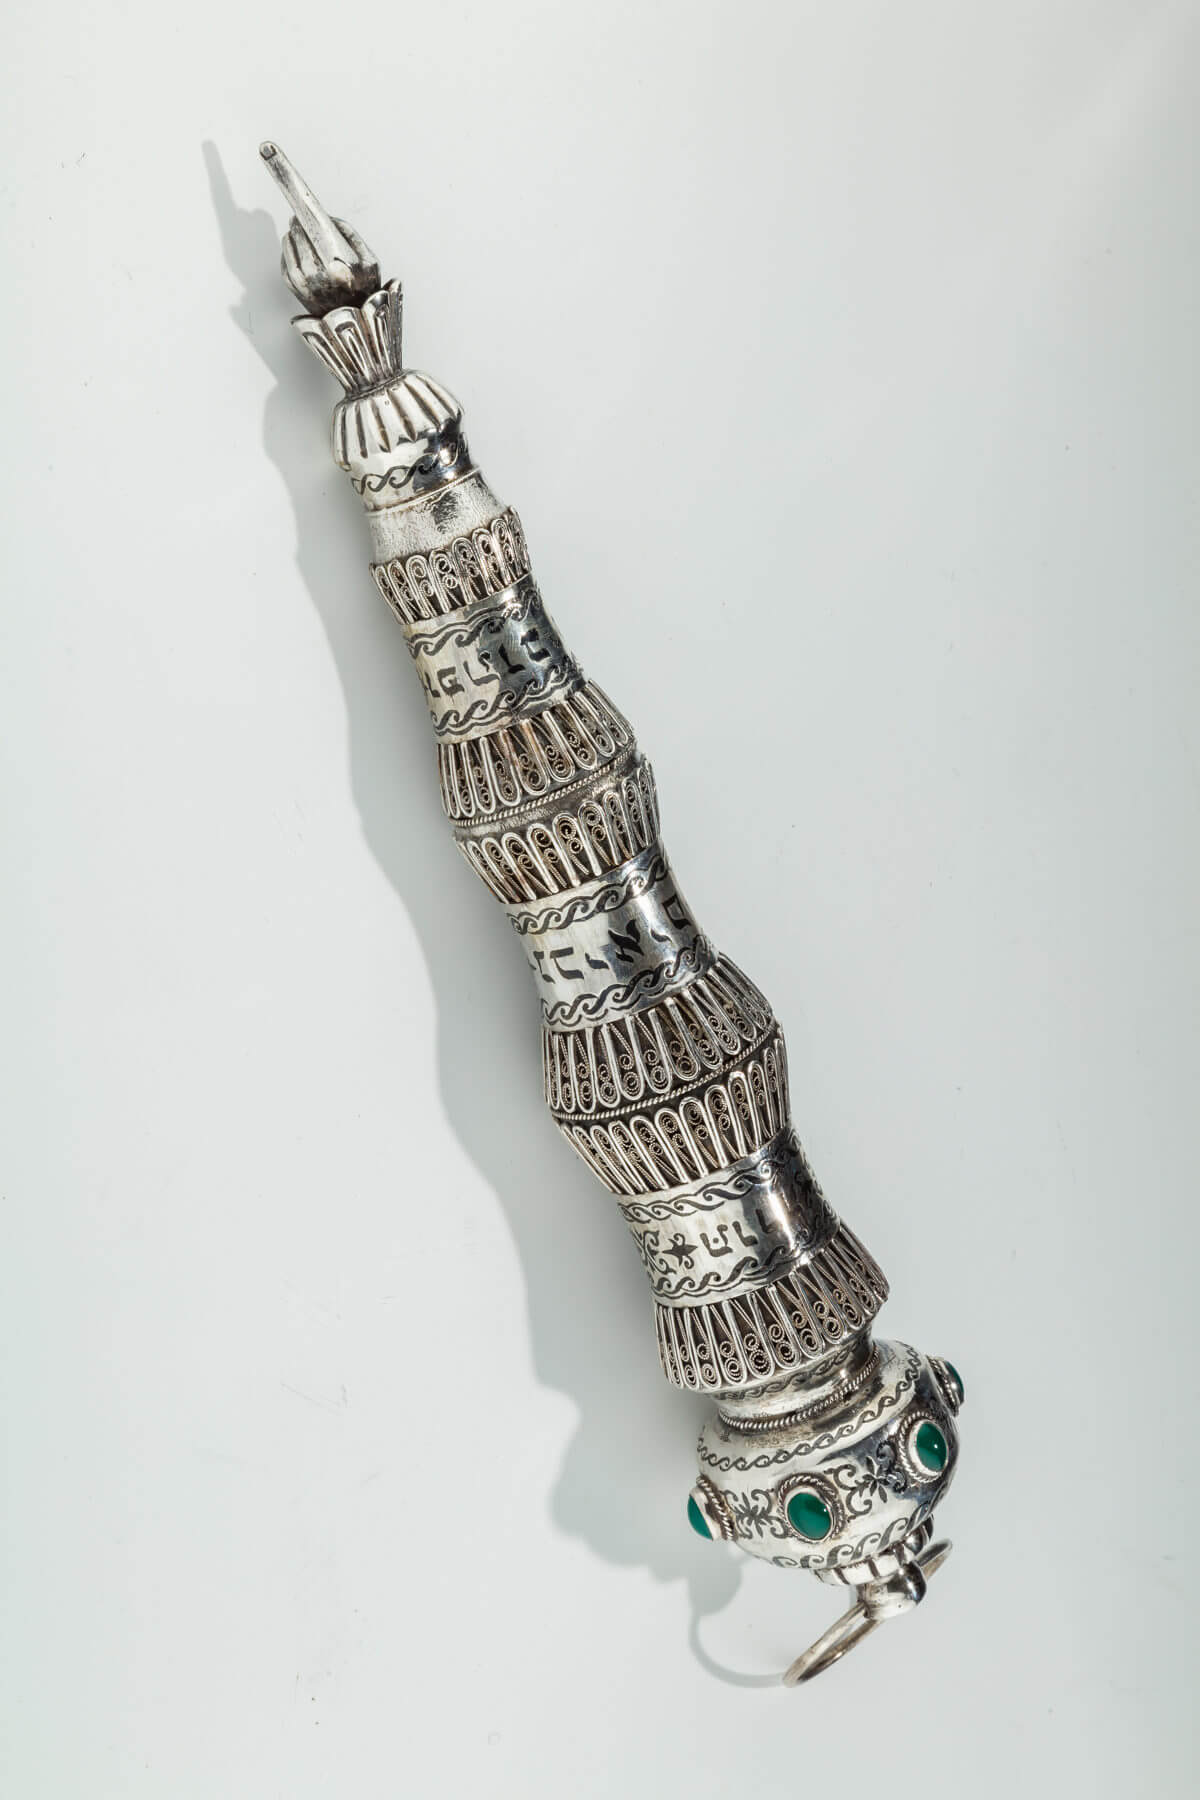 139. A Monumental Silver Torah Pointer by Henryk Winograd